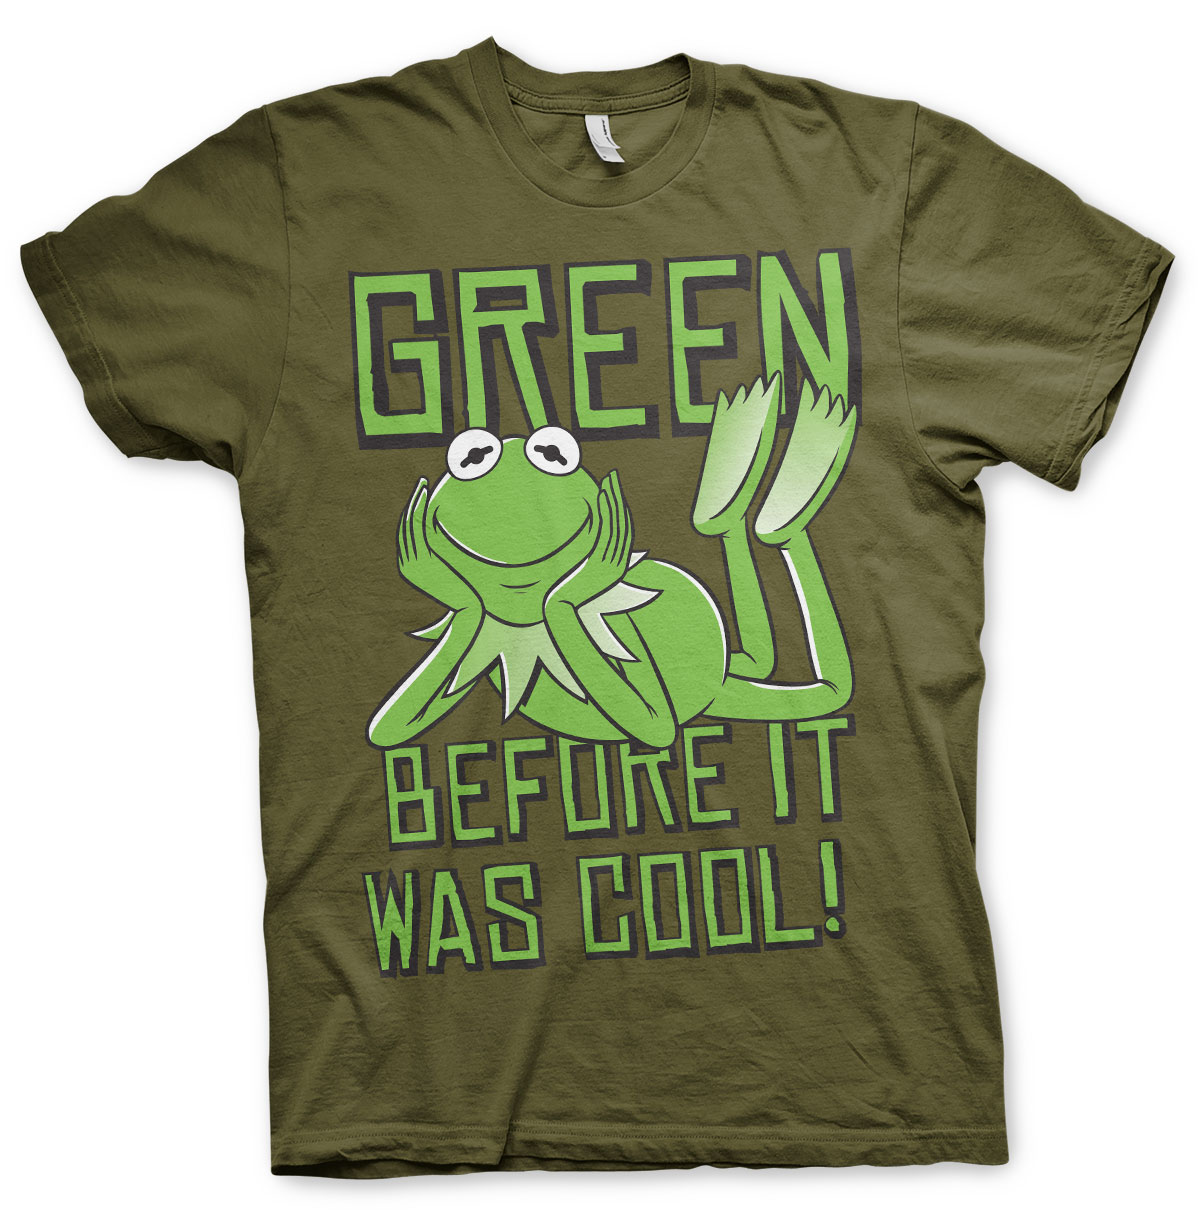 Muppets, The Kermit Green Before It Was Cool